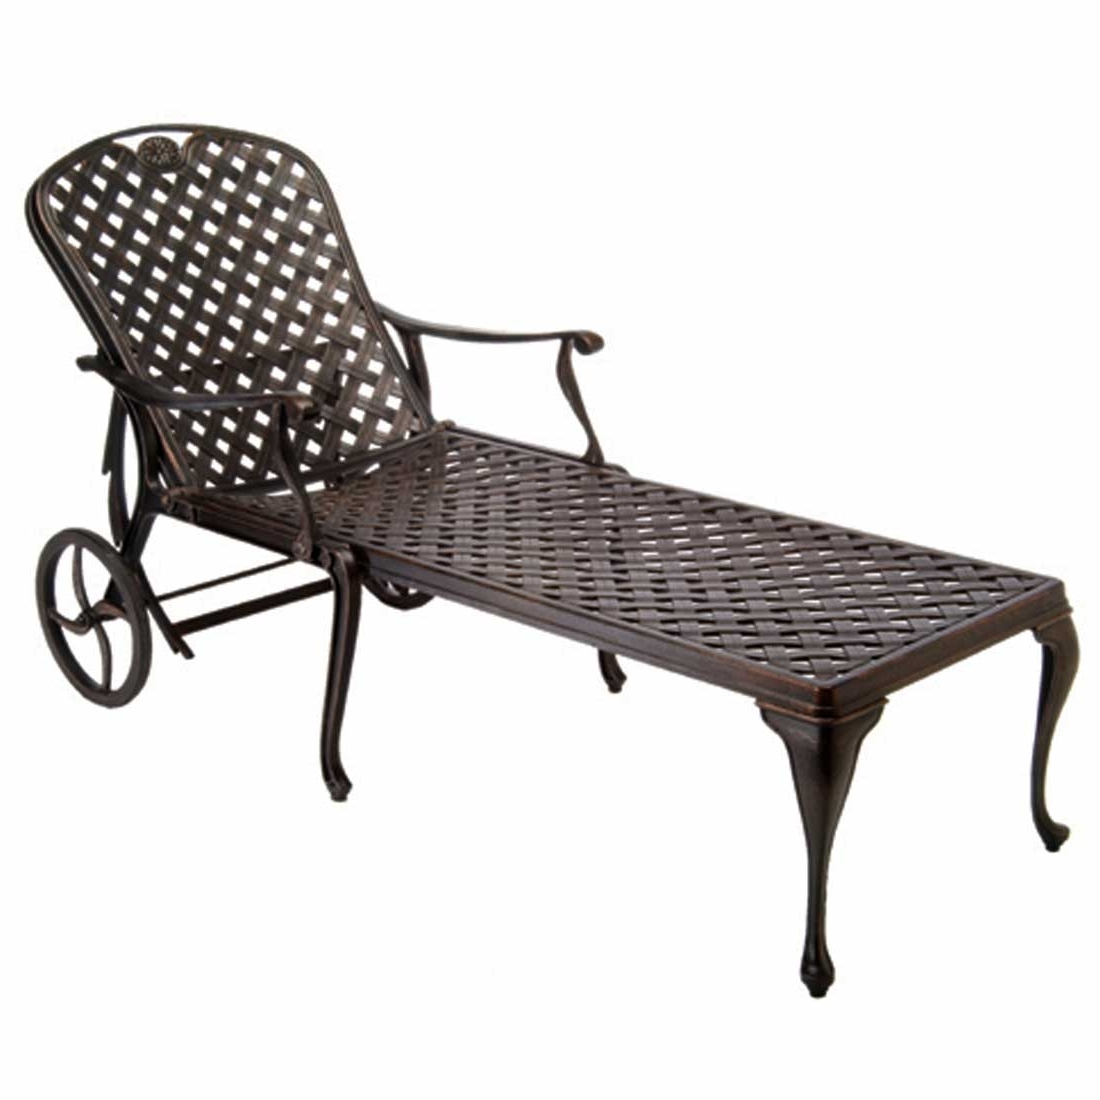 Atlanta Chaise Lounge Chairs Pertaining To Famous Provance Metal Chaise Lounge Chairs (View 5 of 15)